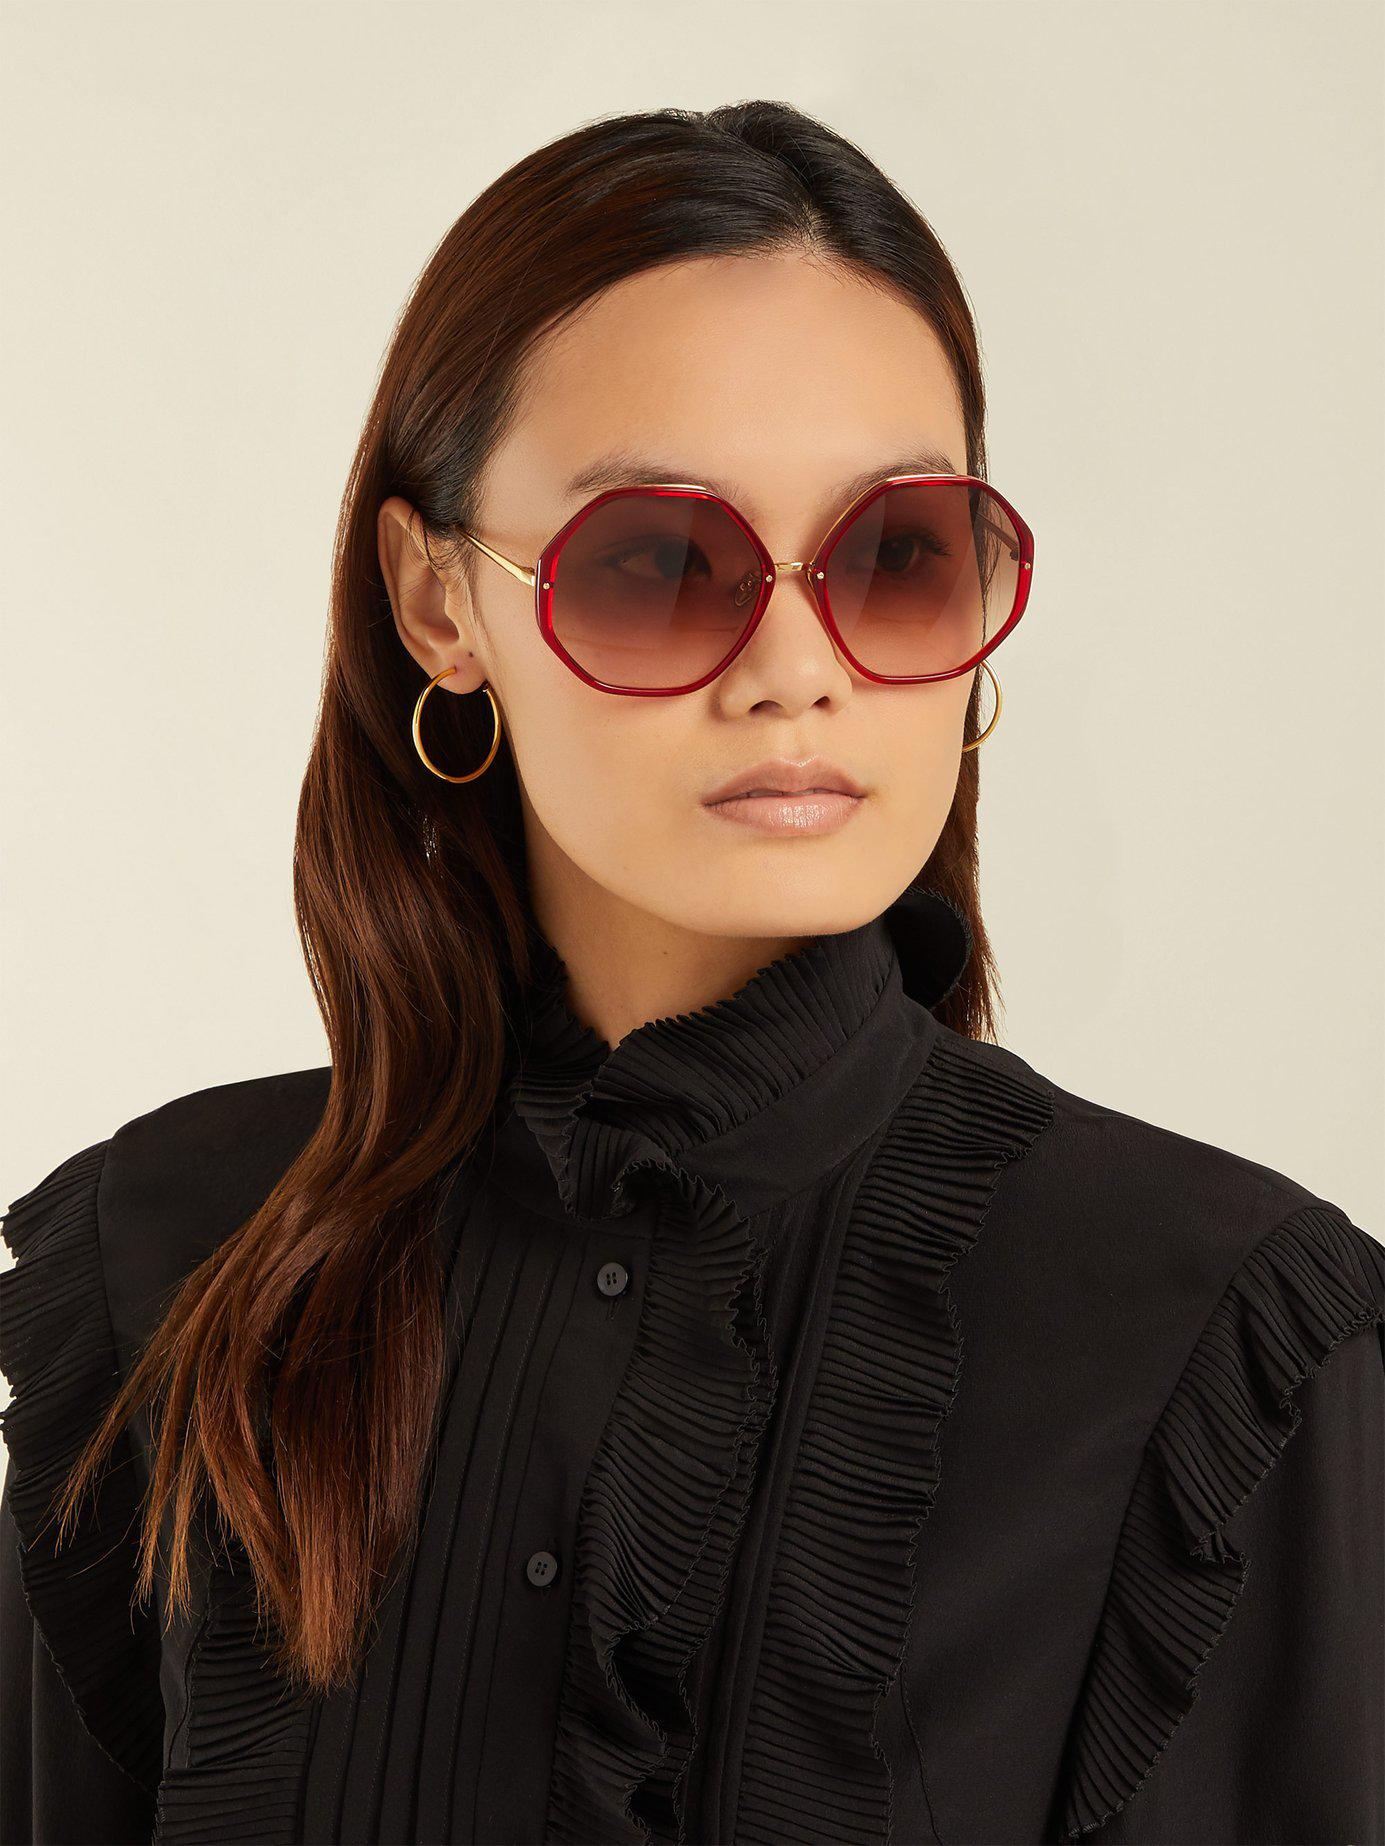 067089065a0d Lyst - Linda Farrow Oversized Hexagonal Frame Sunglasses in Red